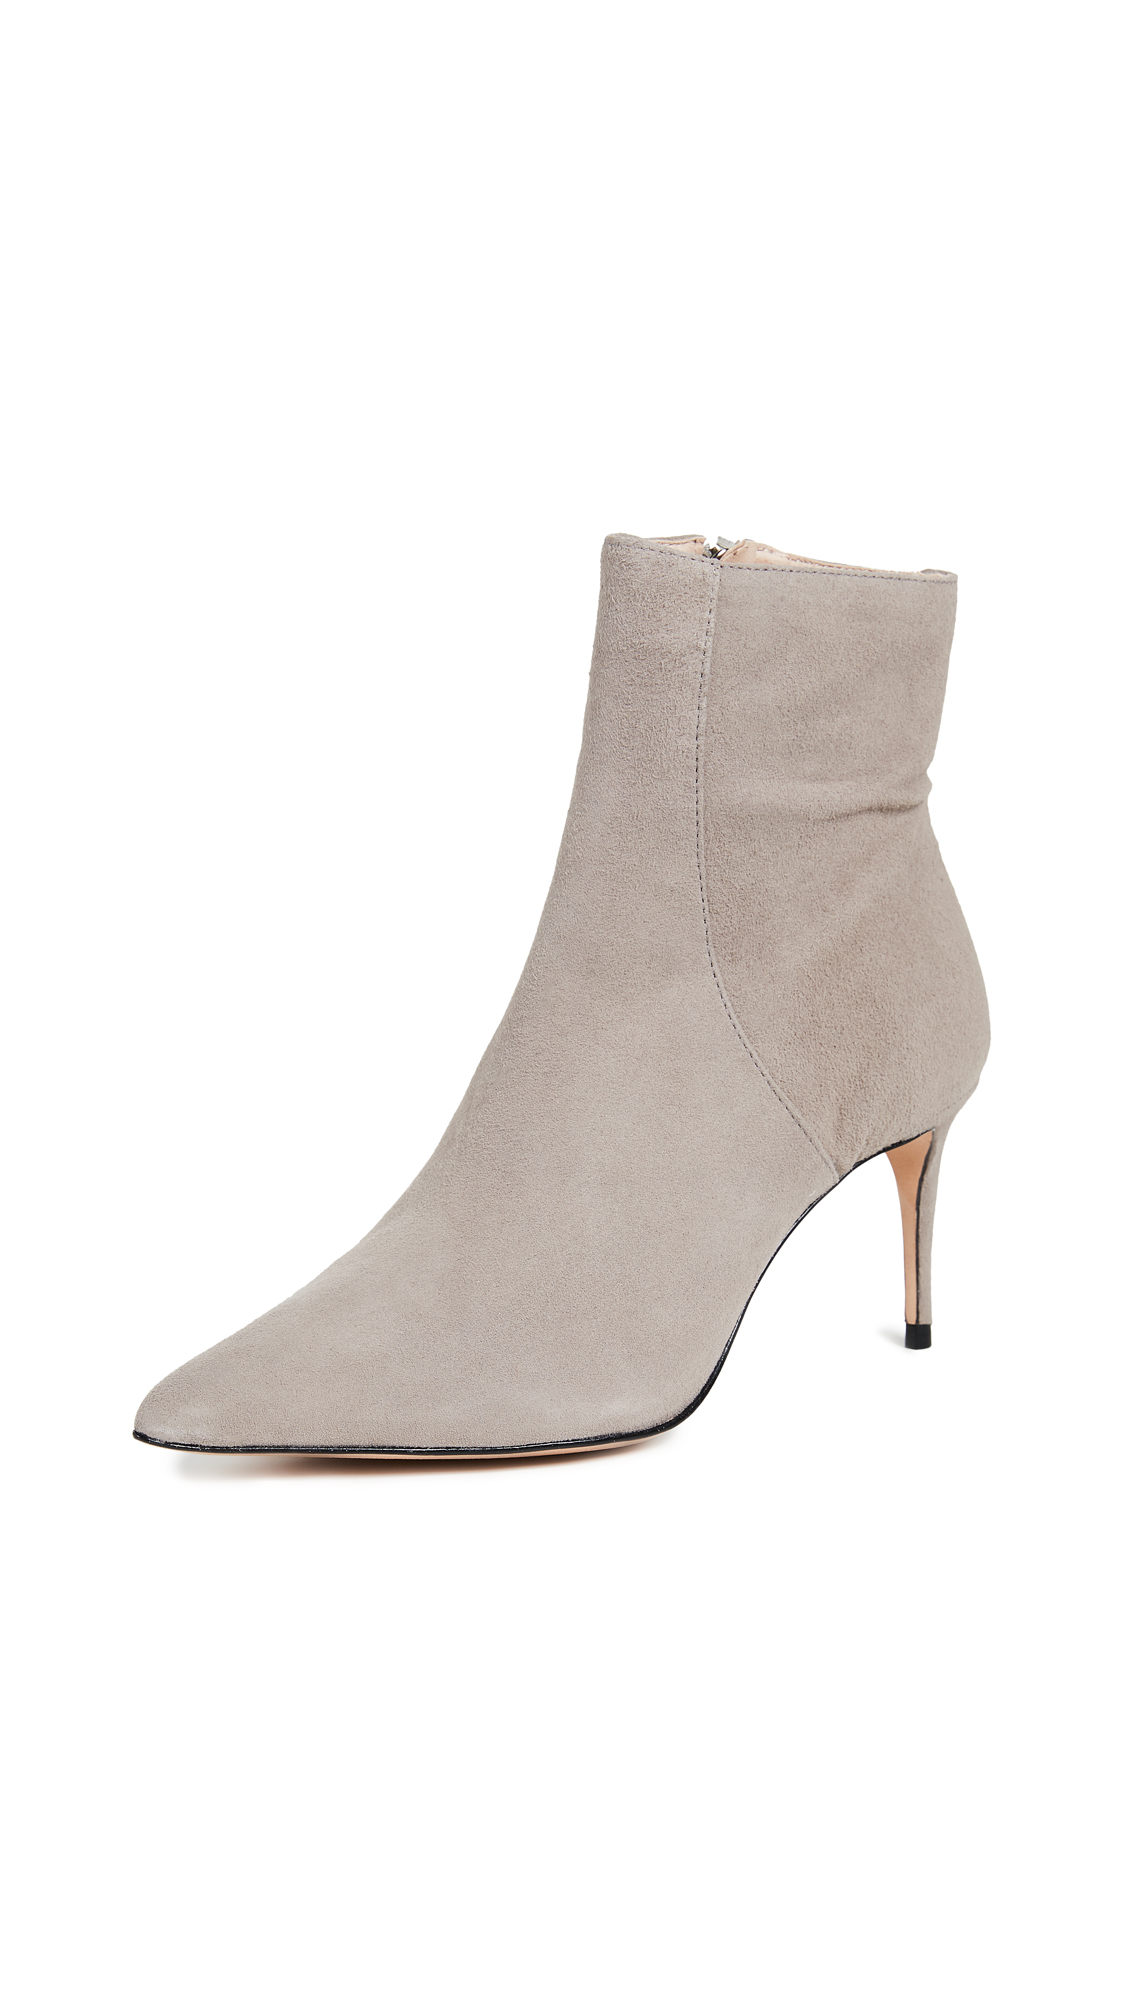 Schutz Bette Booties - Mouse